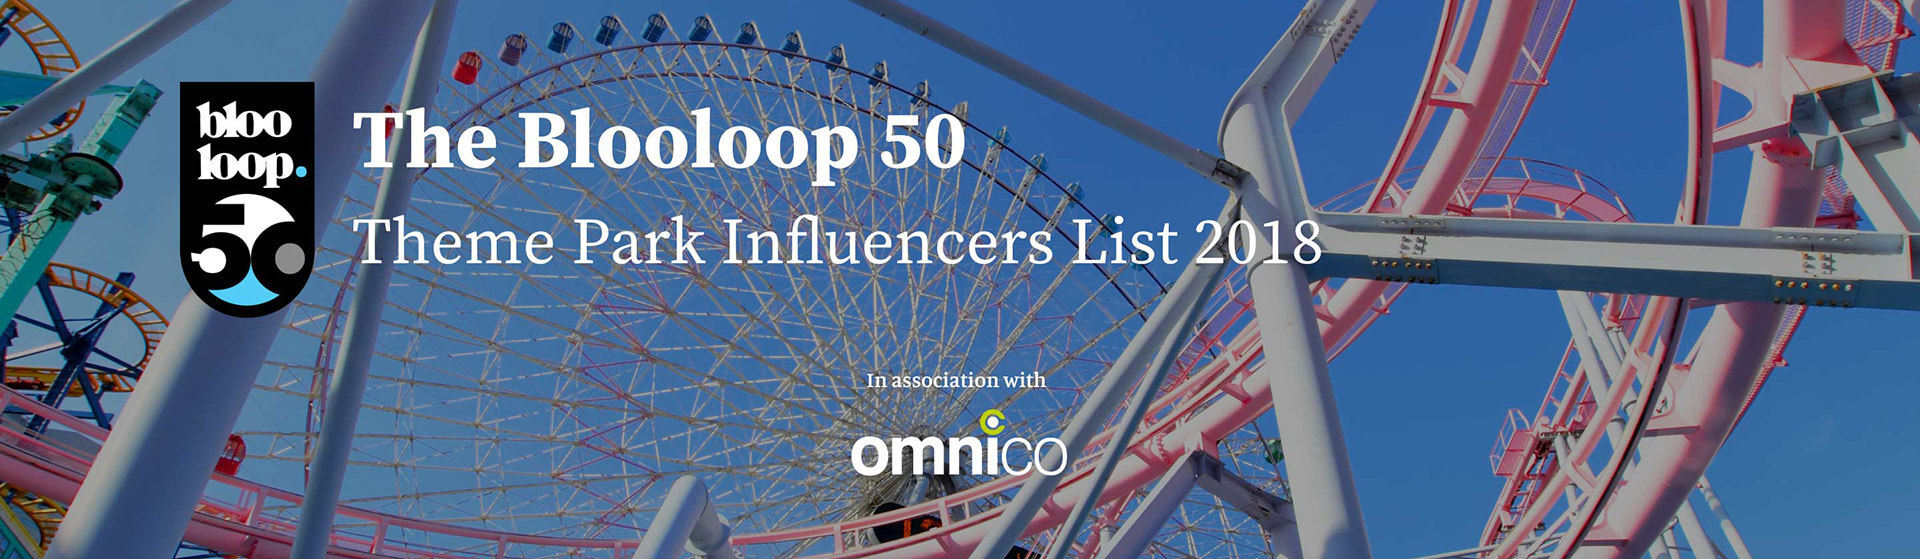 Blooloop Theme Park Influencer List 2018